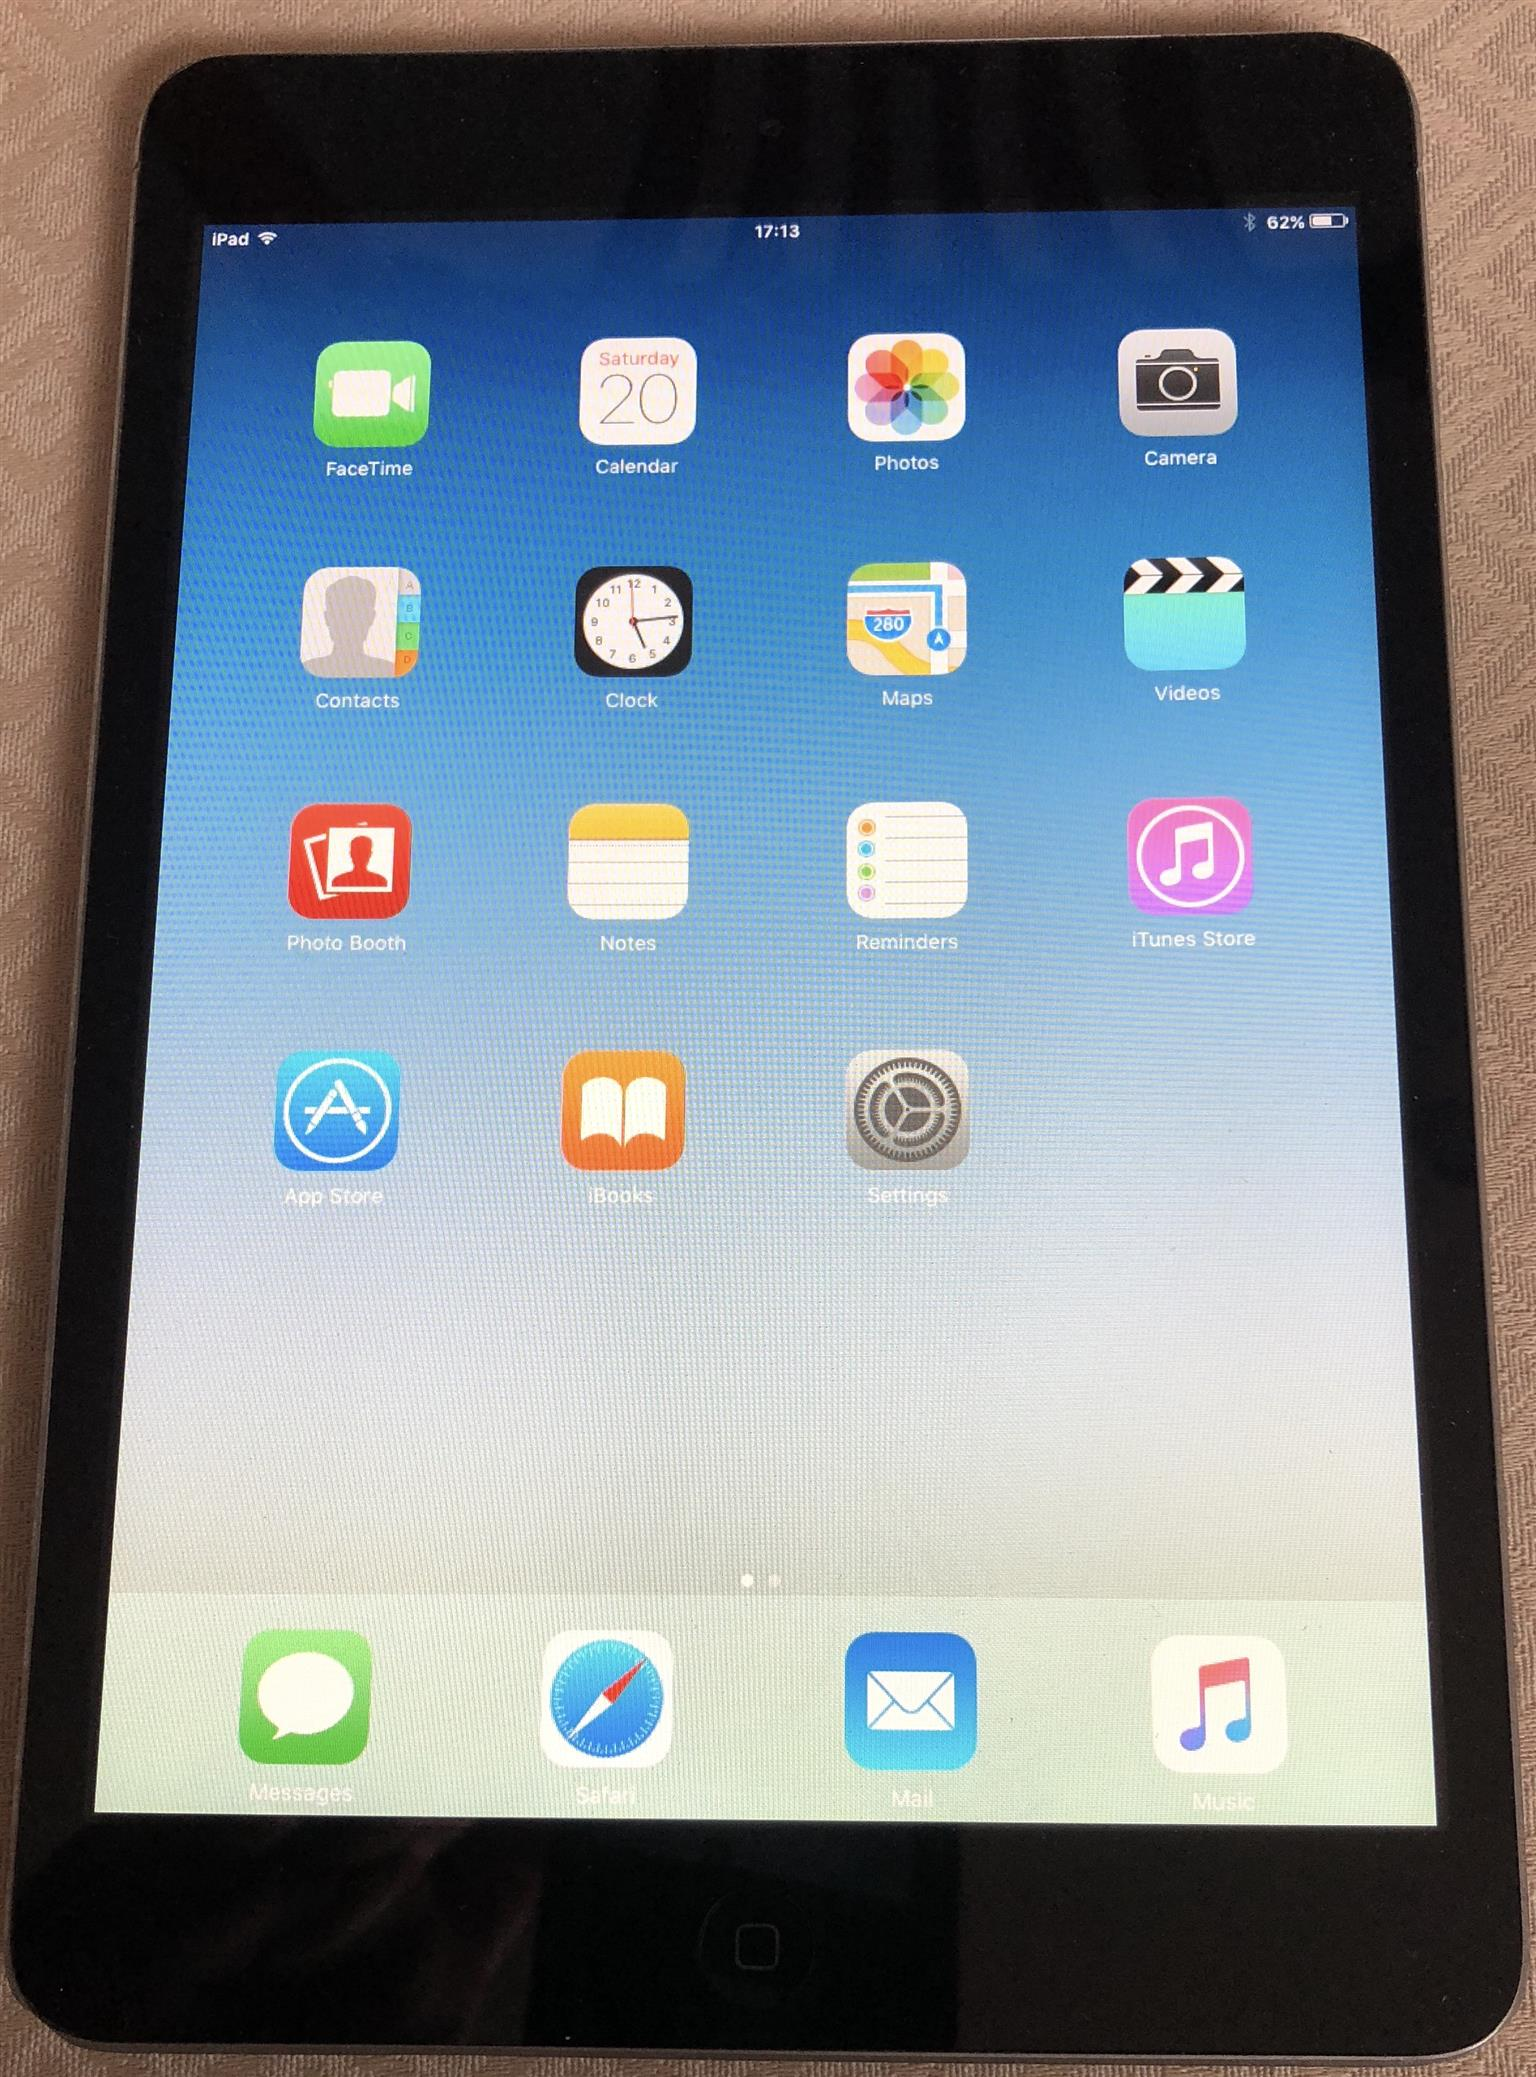 Ipad Mini 16gb Wifi Space Gray A1432 Mf432hc A In New Smart Cover Excellent Condition Junk Mail Apple Black